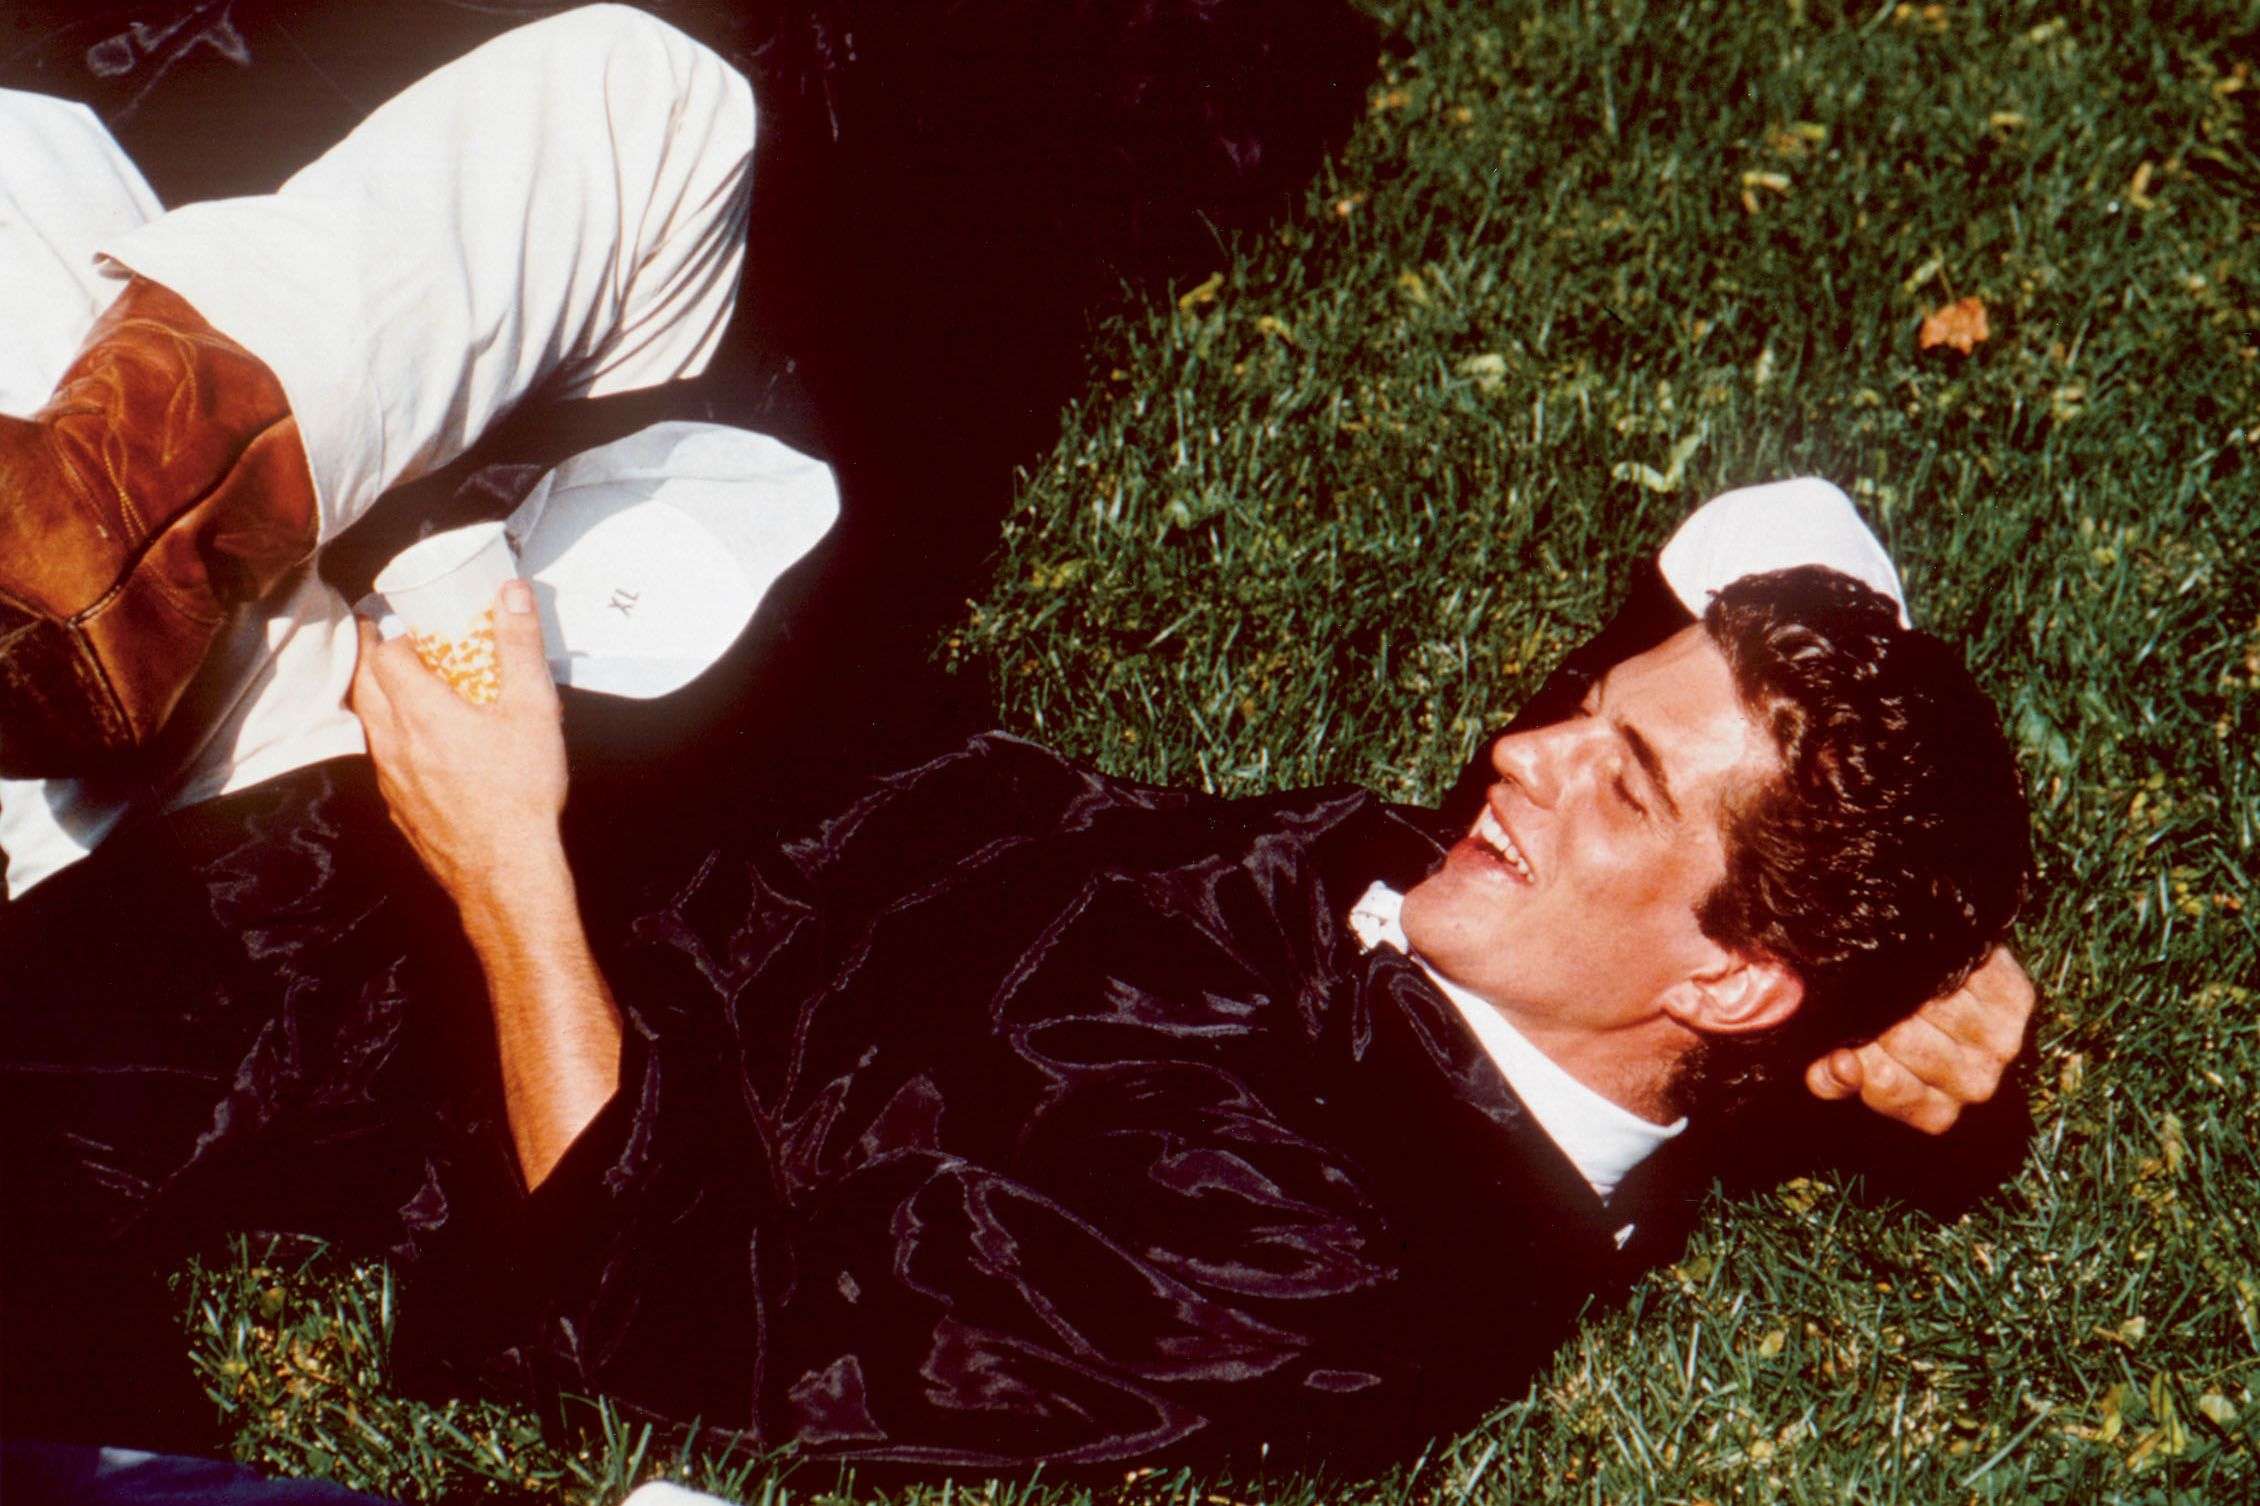 John F. Kennedy Jr. lies on the the grass in his robe at his graduation from Brown University, Rhode Island on June 6, 1983.